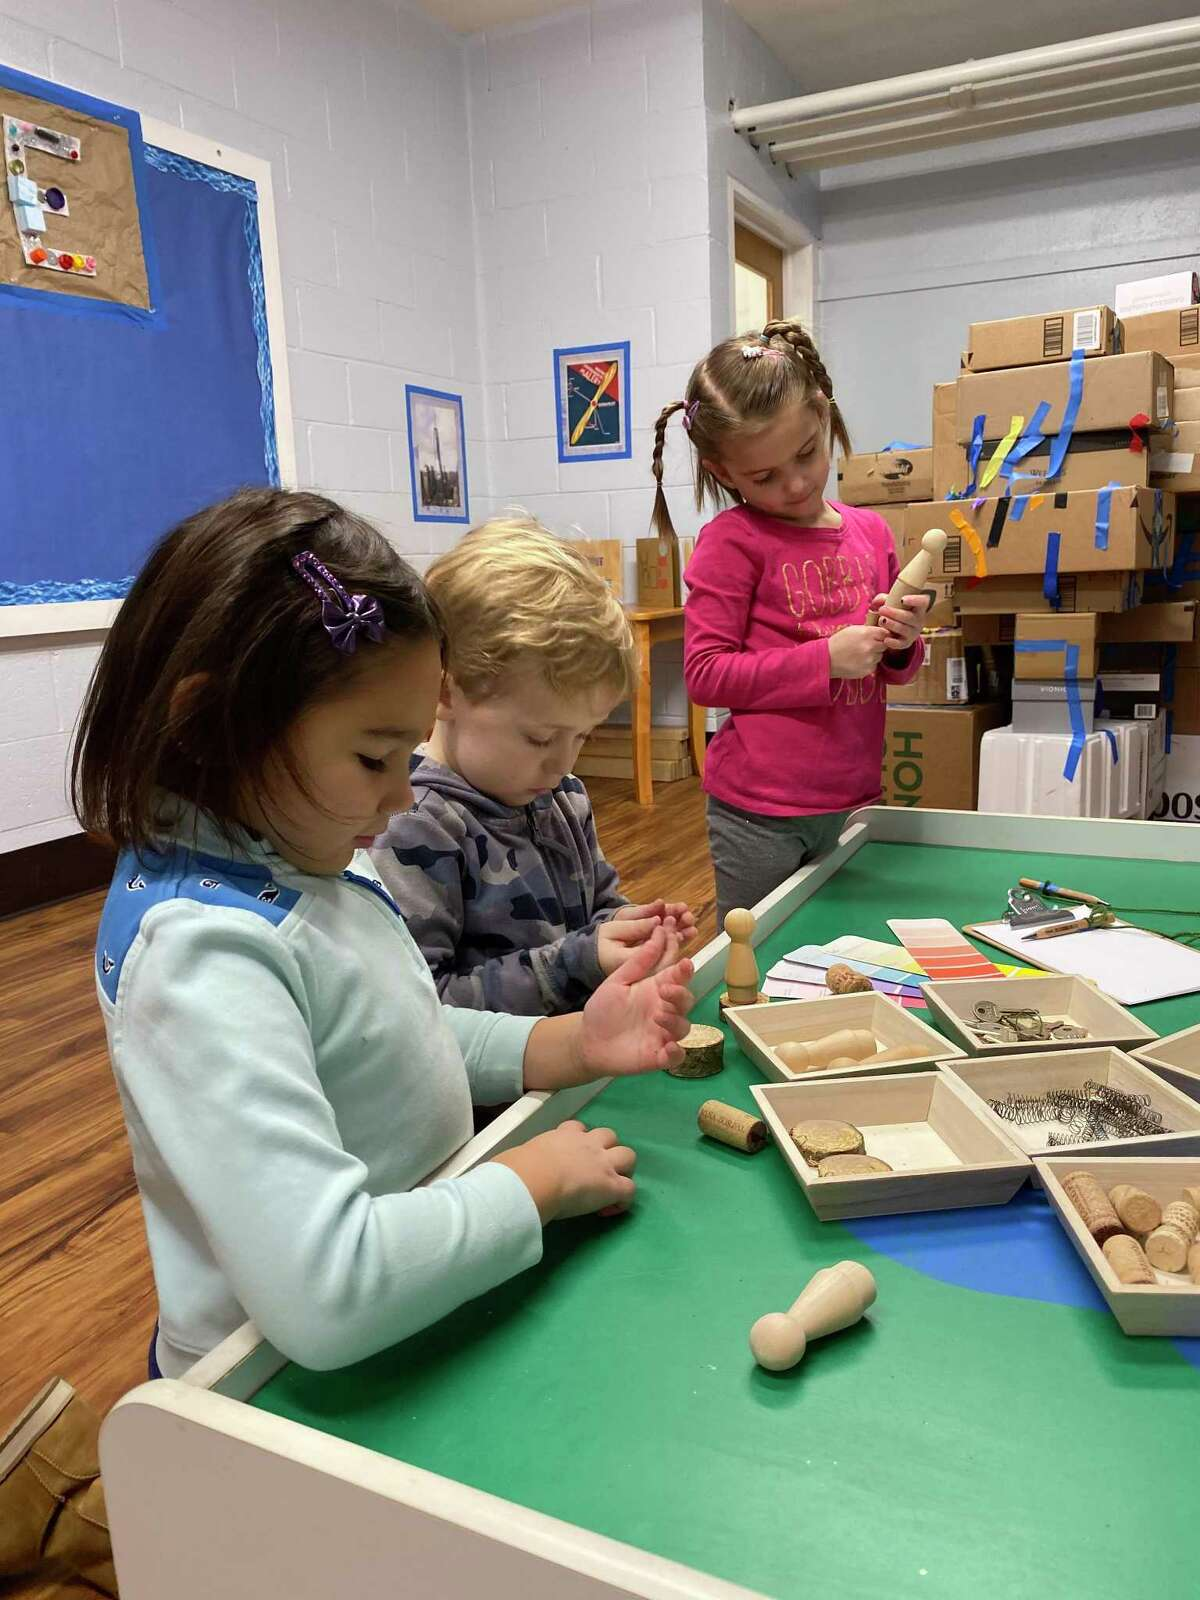 The United Methodist Preschool, (UMPS), has announced its newly completed Makerspace.